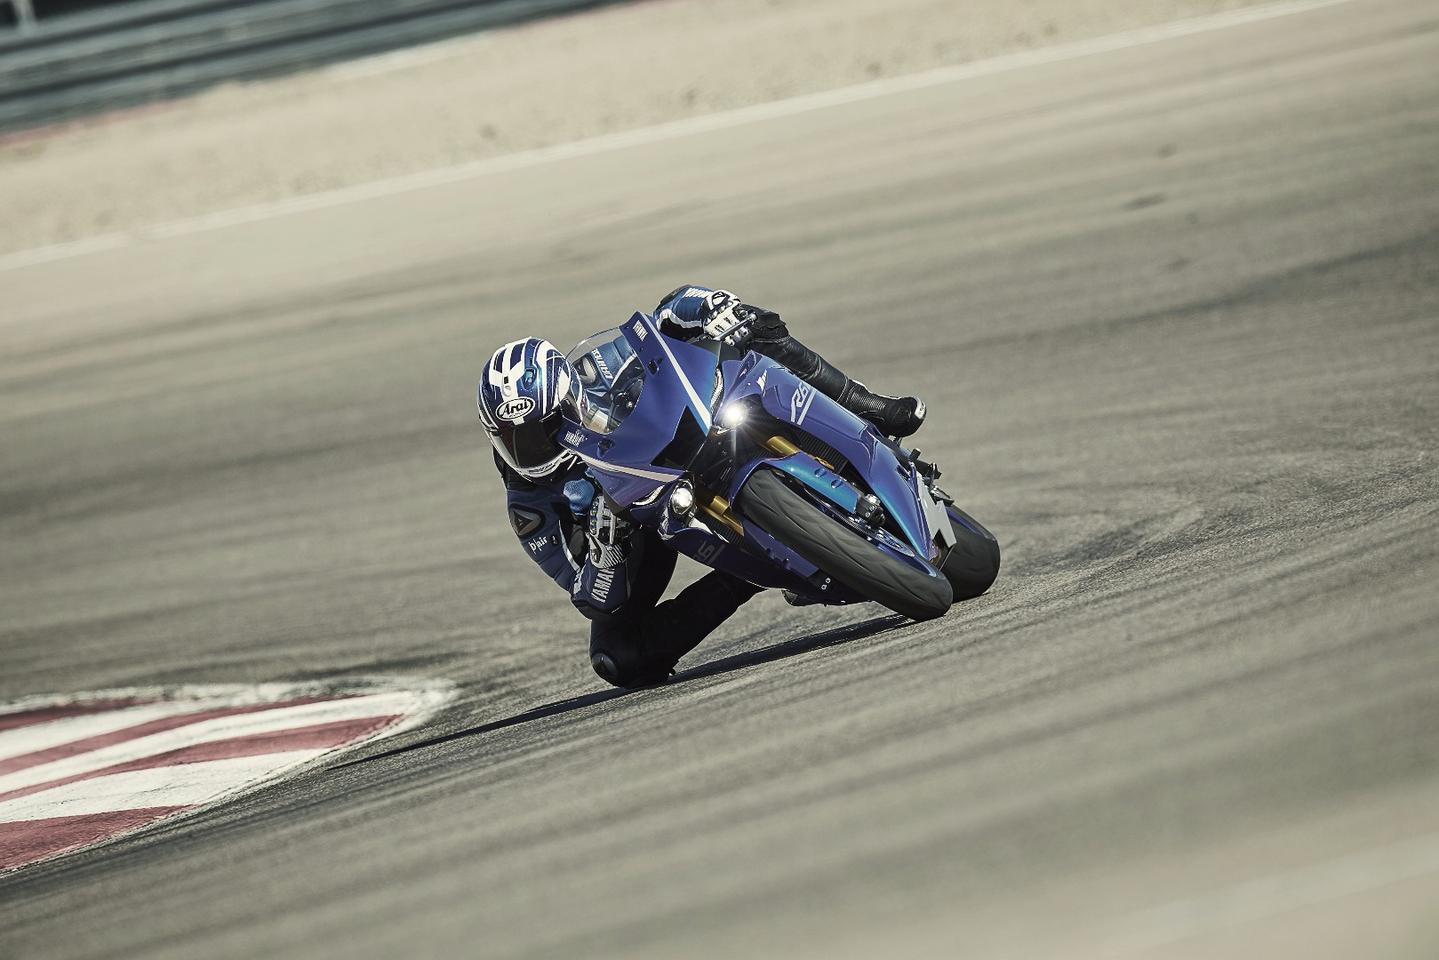 The 2017 Yamaha YZF-R6 in action